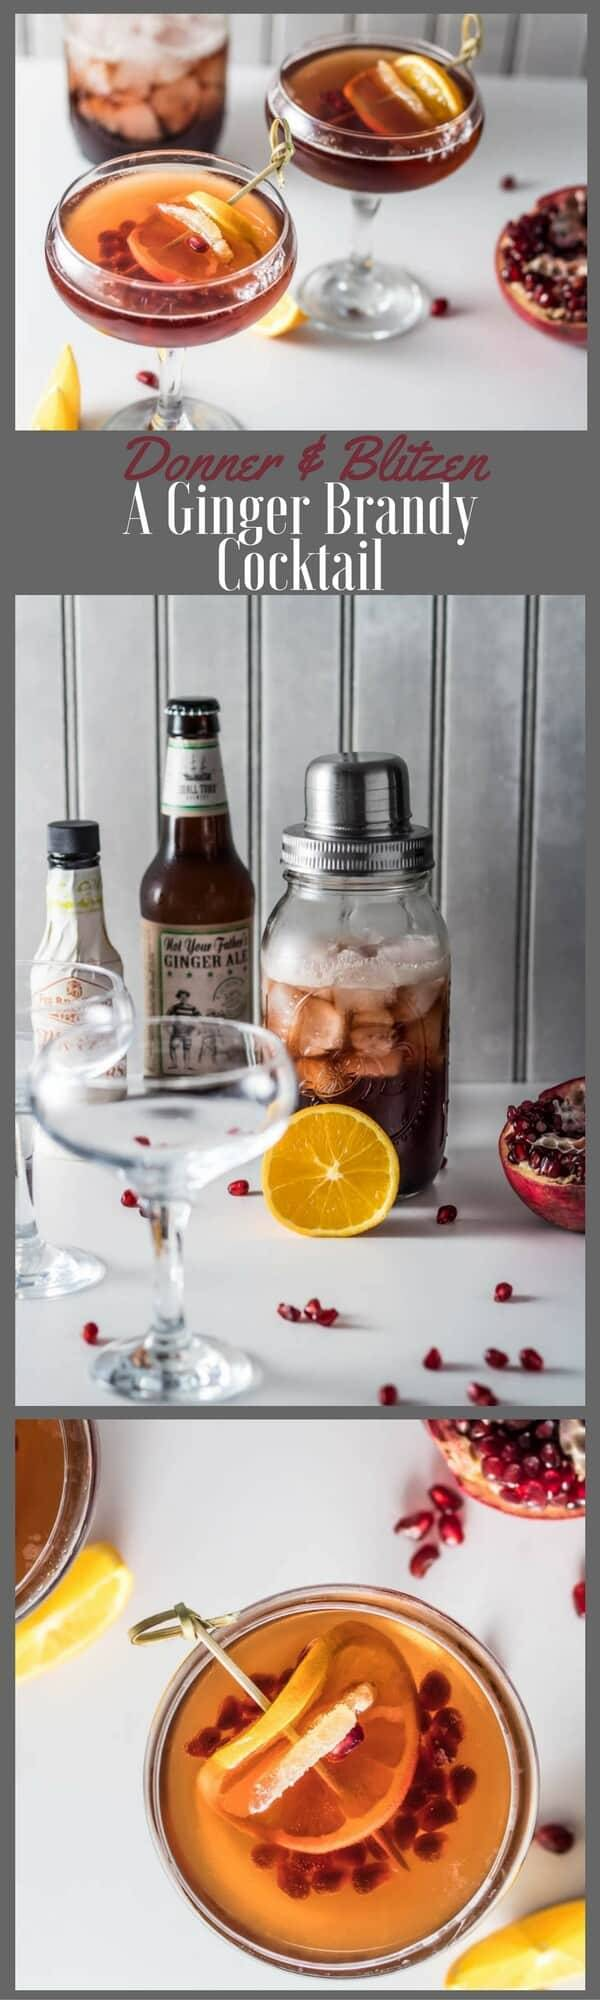 A festive time of year calls for a festive cocktail, right? Donner and Blitzen: A Ginger Brandy Cocktail makes a lovely addition to your holiday cocktail party... Combine ginger simple syrup, brandy, pomegranate molasses, and pomegranate juice with ice in your cocktail shaker, pour into your favorite glassware, top off with ginger beer, and a few shakes of orange bitters. Garnish with an orange slice, and crystallized ginger. Bellissimo! #pom #Fee #gingerbrandycocktail #wintercocktail #fallcocktail #Christmascocktail